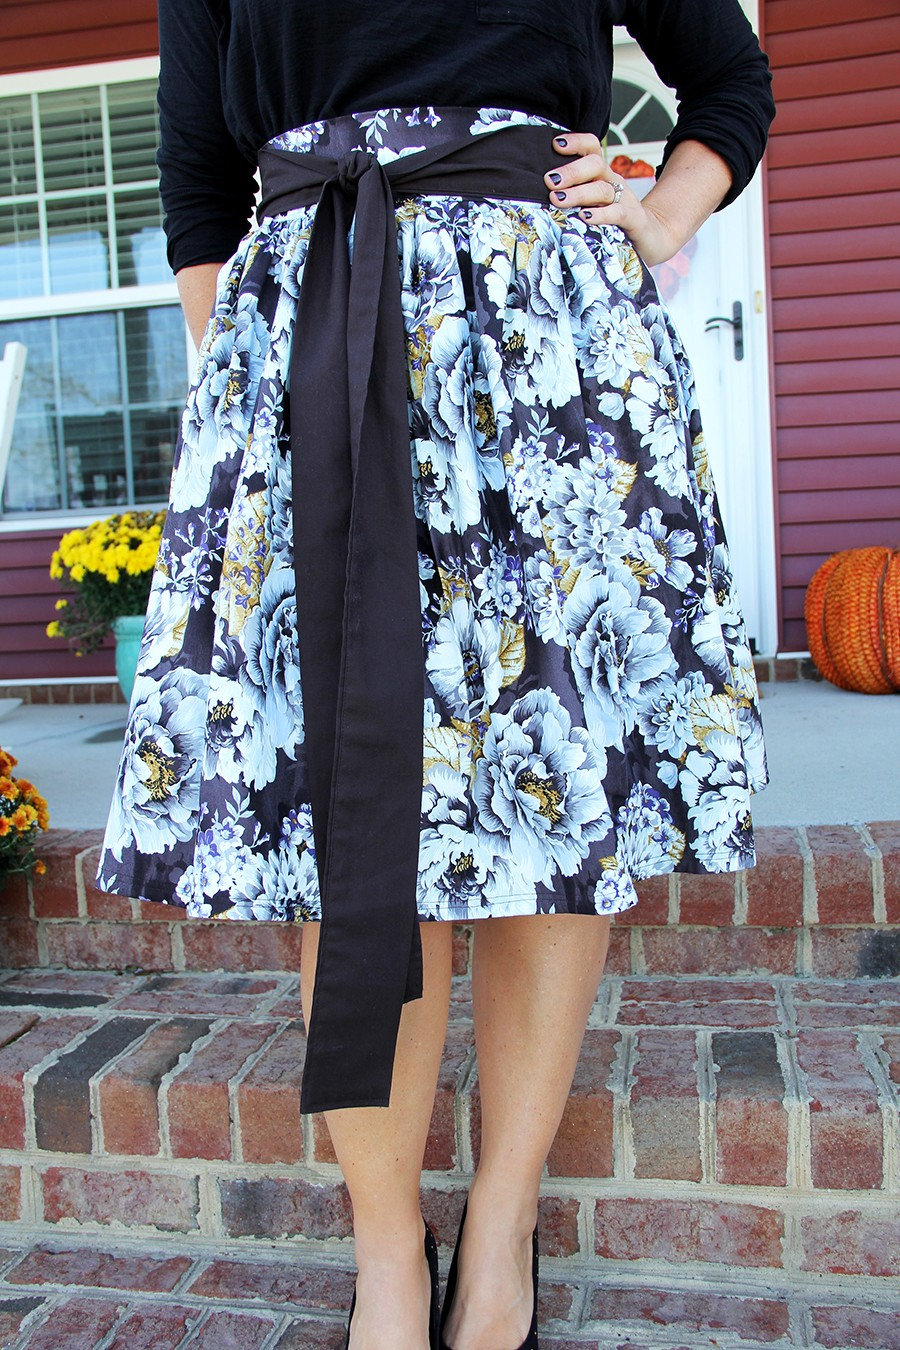 skirt with sash sewing pattern, thanksgiving skirt